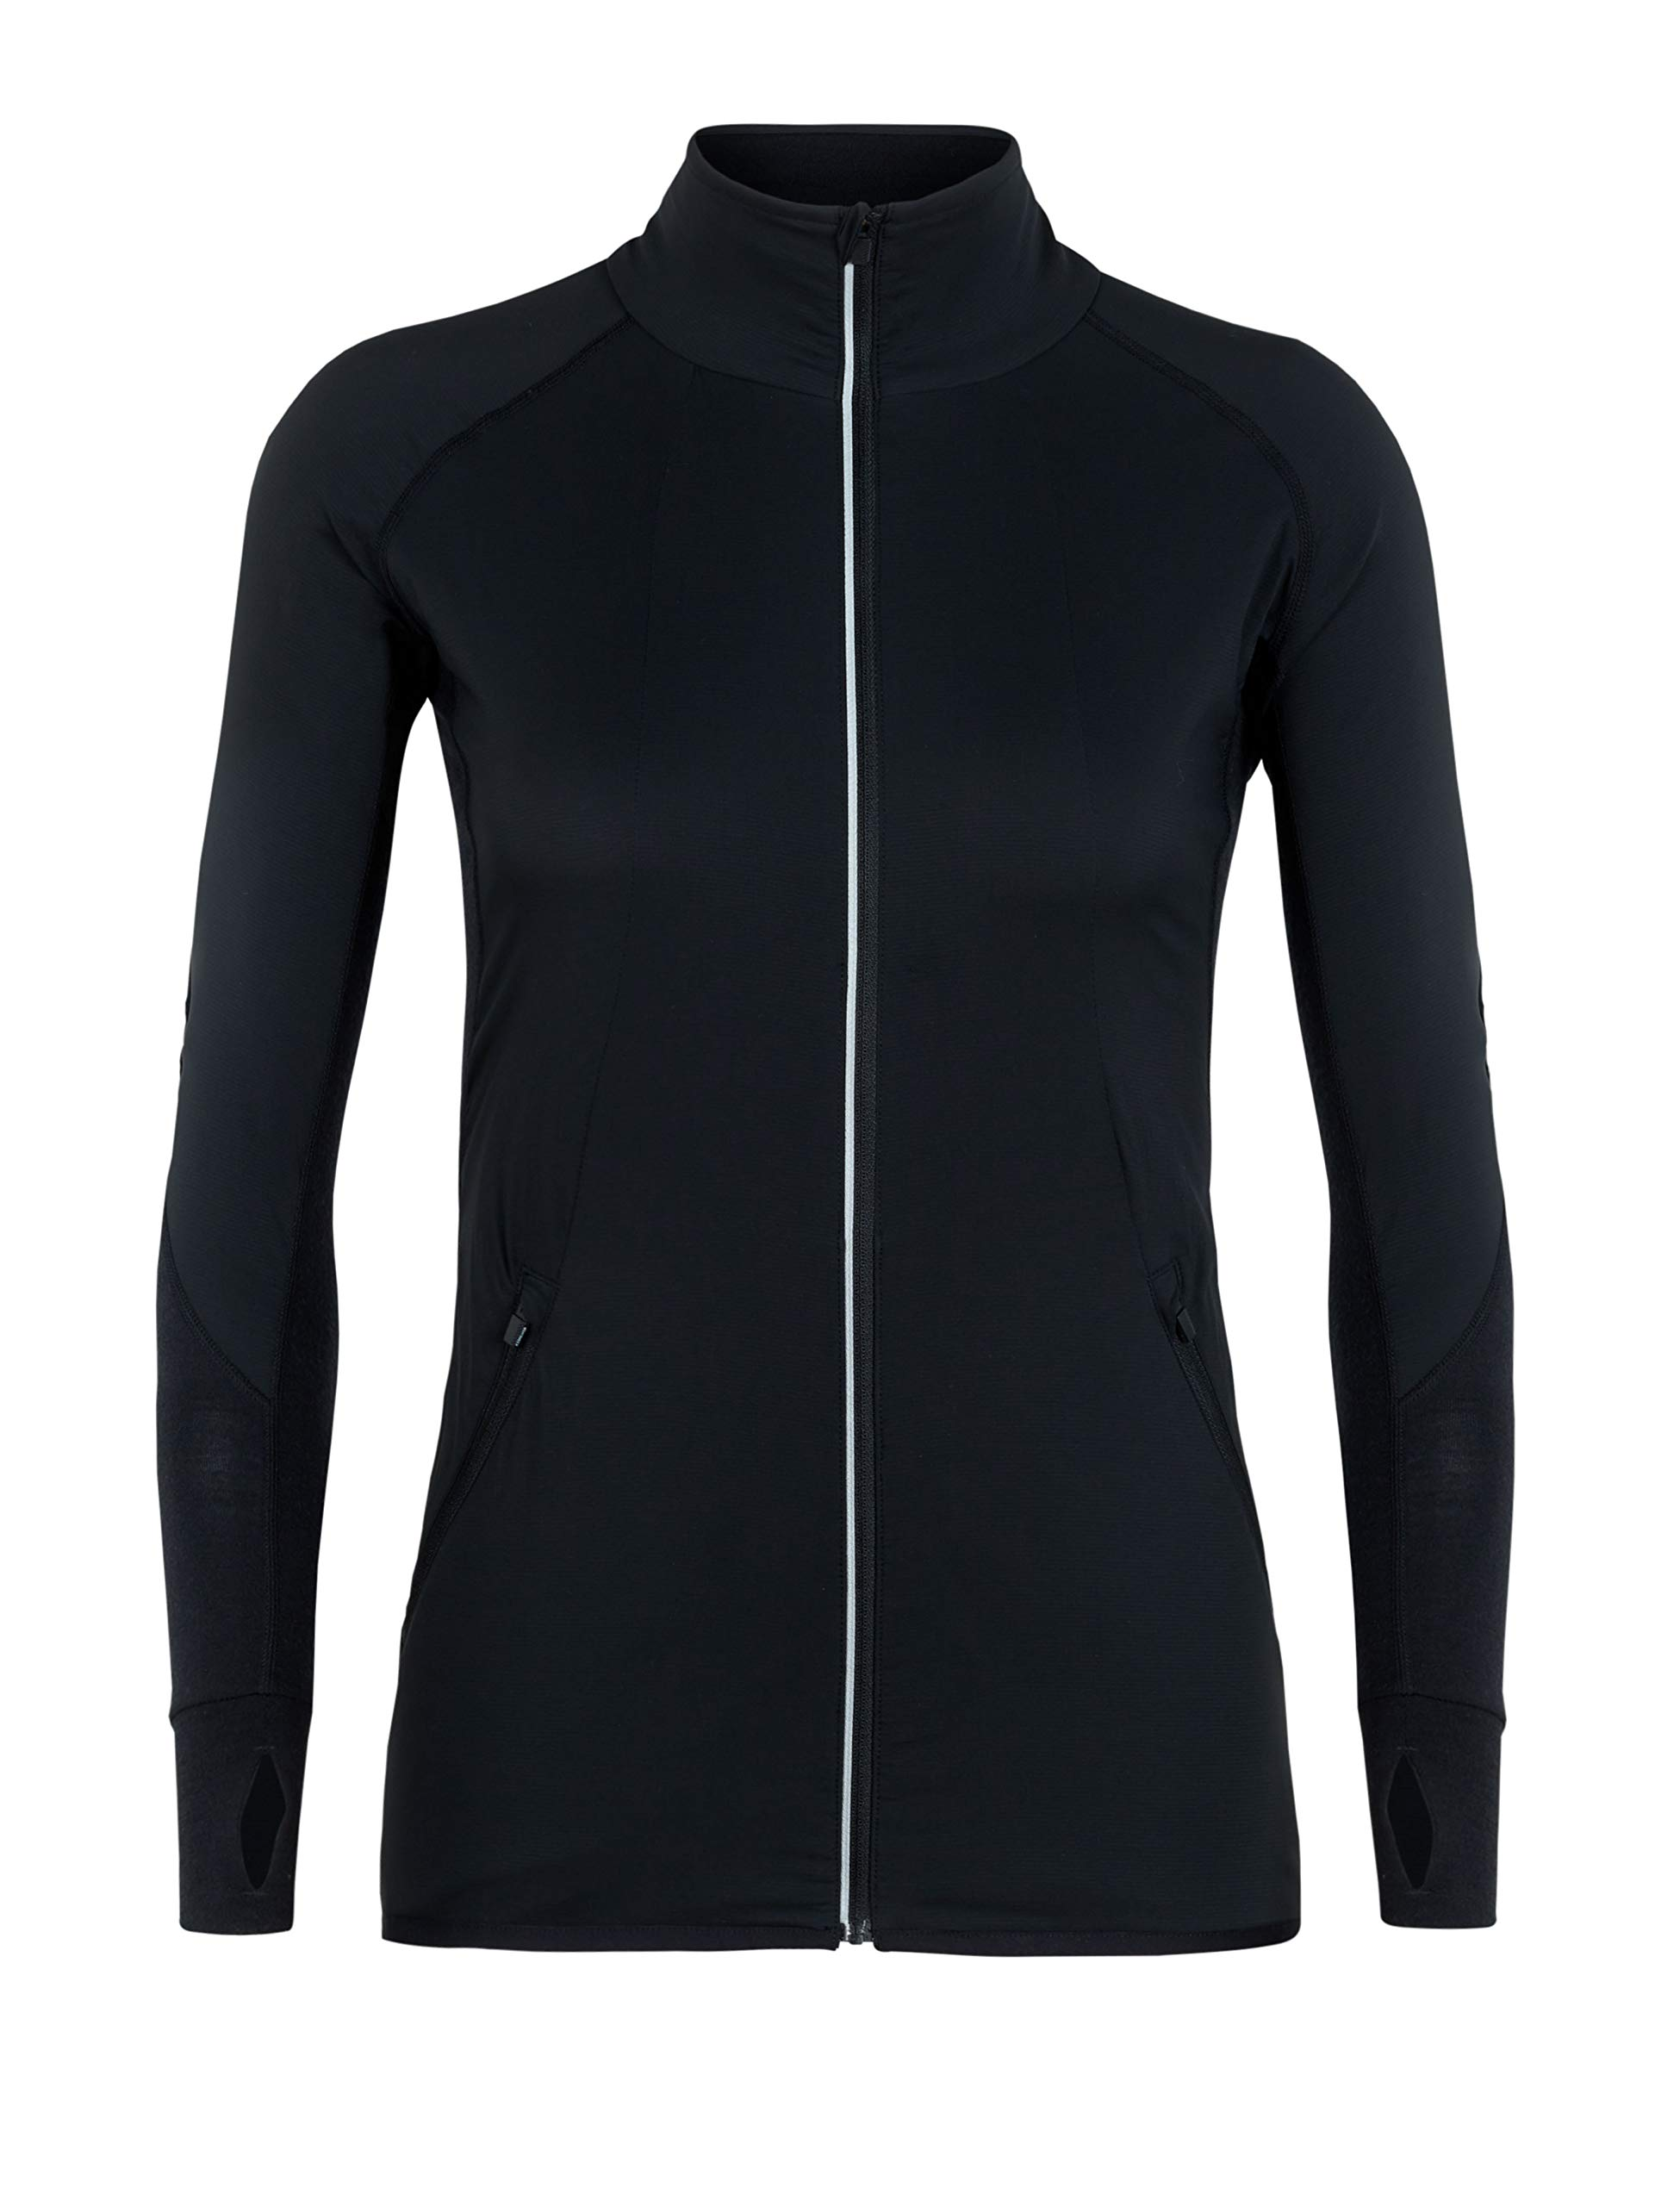 Icebreaker Damen Tech Trainer Hybrid Jacket Fleecejacke, Black, XS